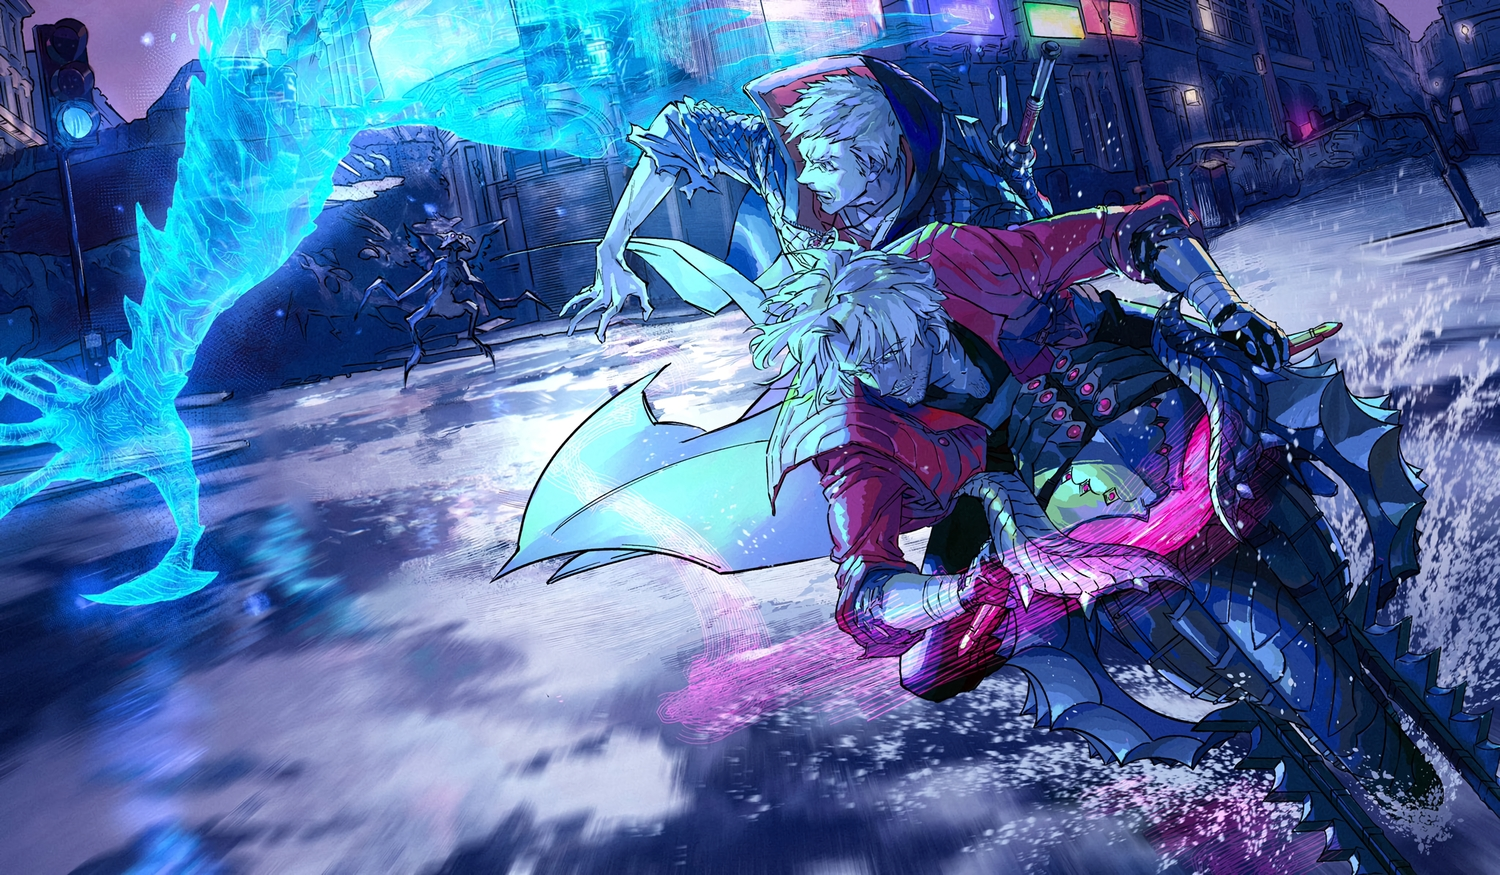 all_male bandage building city dante devil_may_cry gloves johngaramond male motorcycle necklace nero polychromatic short_hair sword water weapon white_hair wristwear